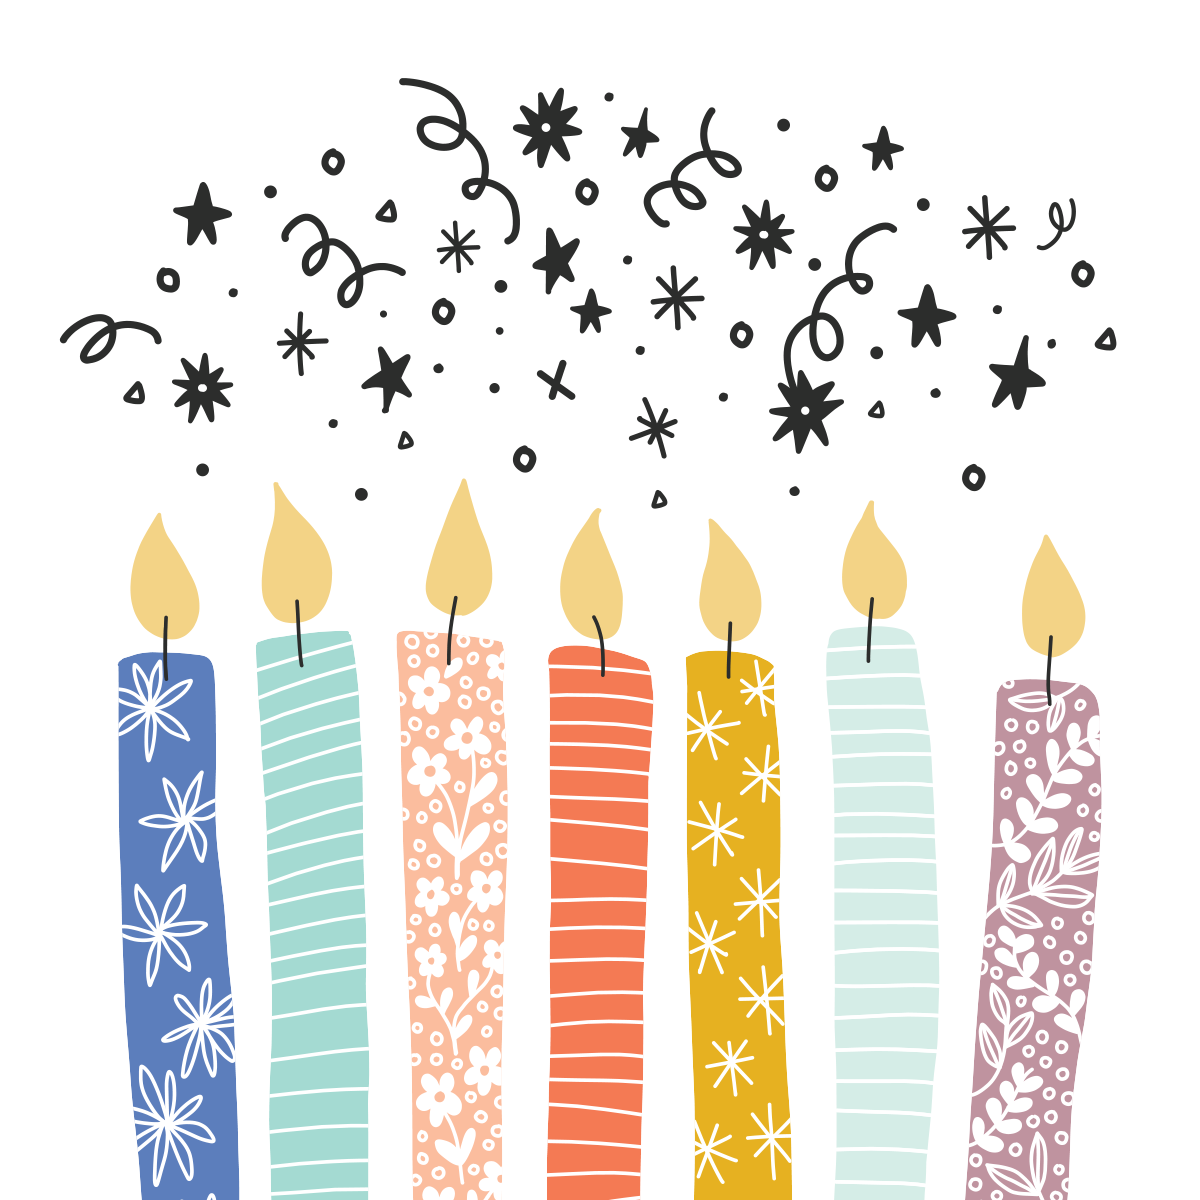 graphic regarding Printable Candles called Totally free Printable Birthday Candle Card Tempo Artistic Style